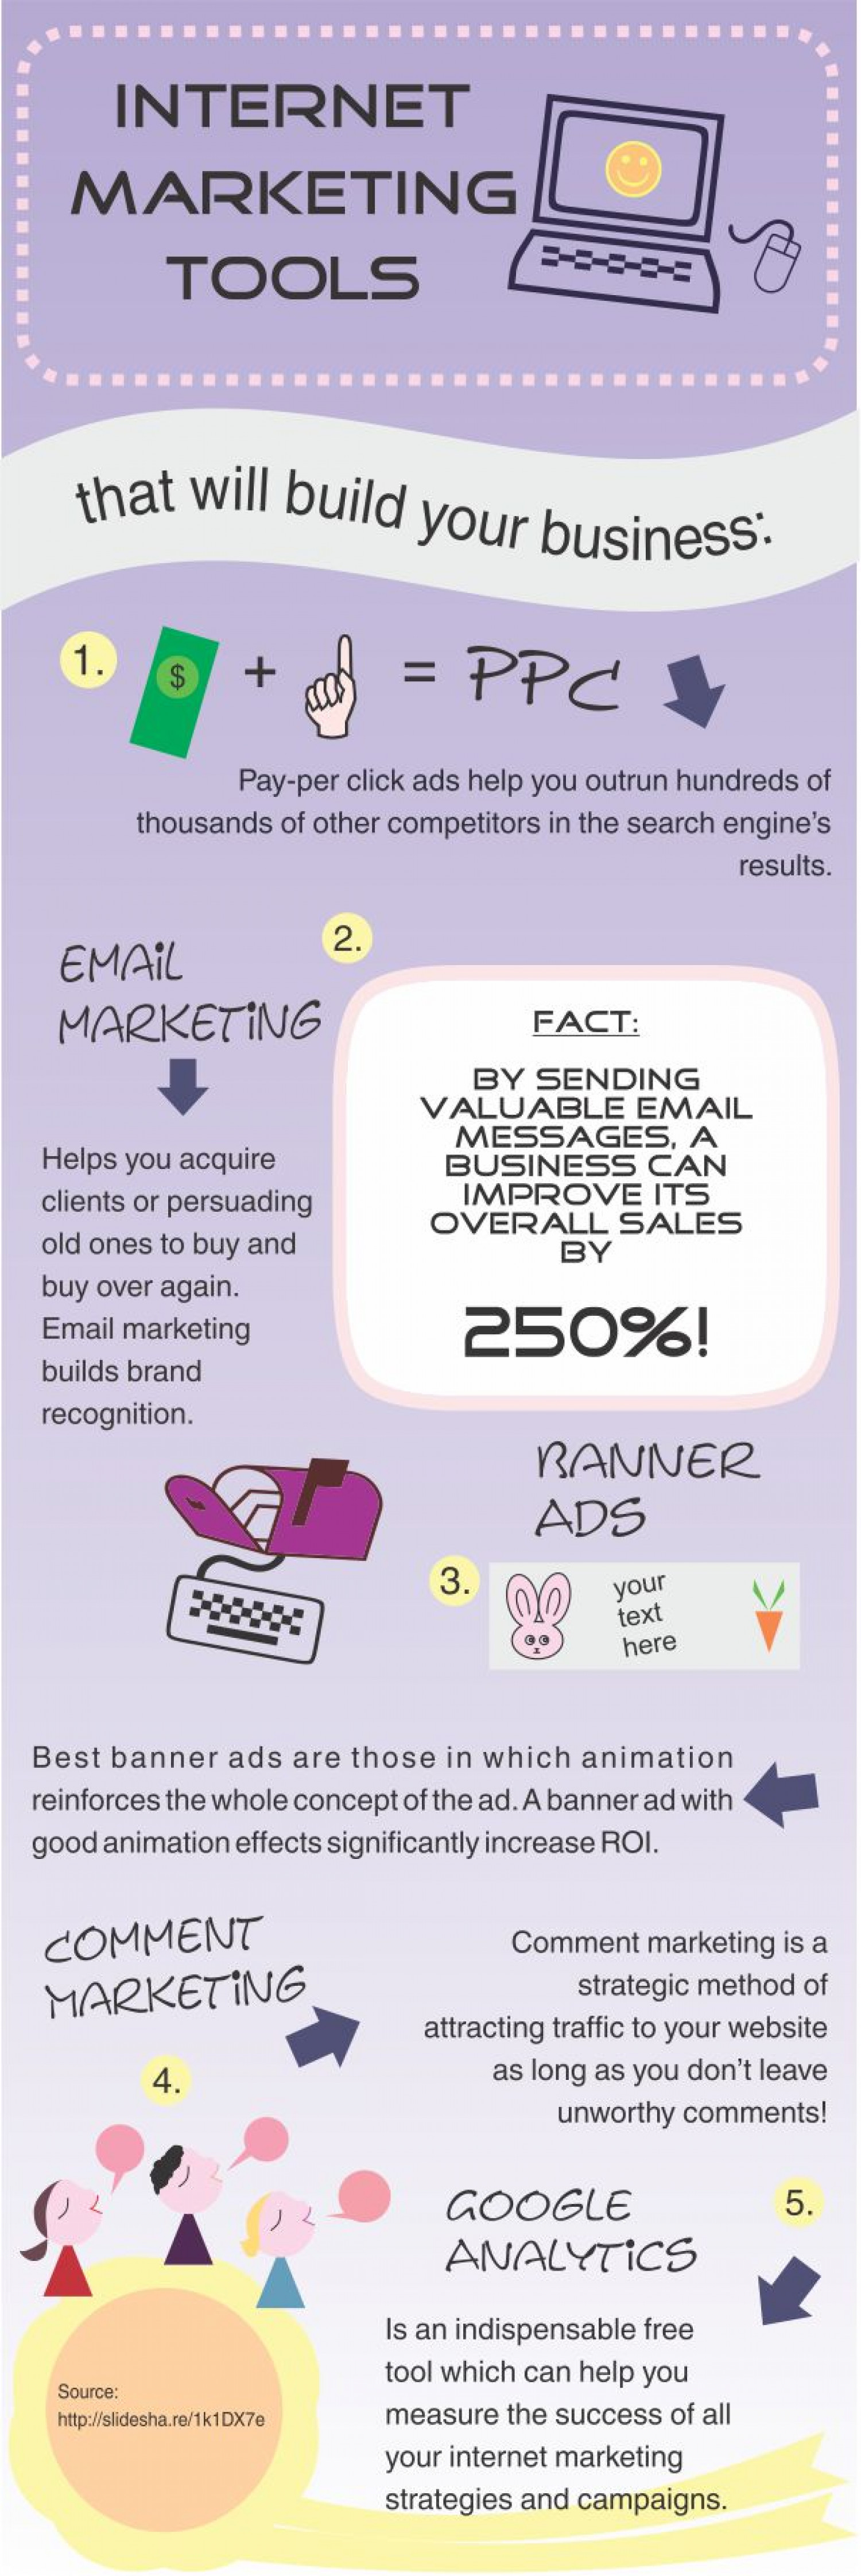 Internet Marketing Tools Infographic